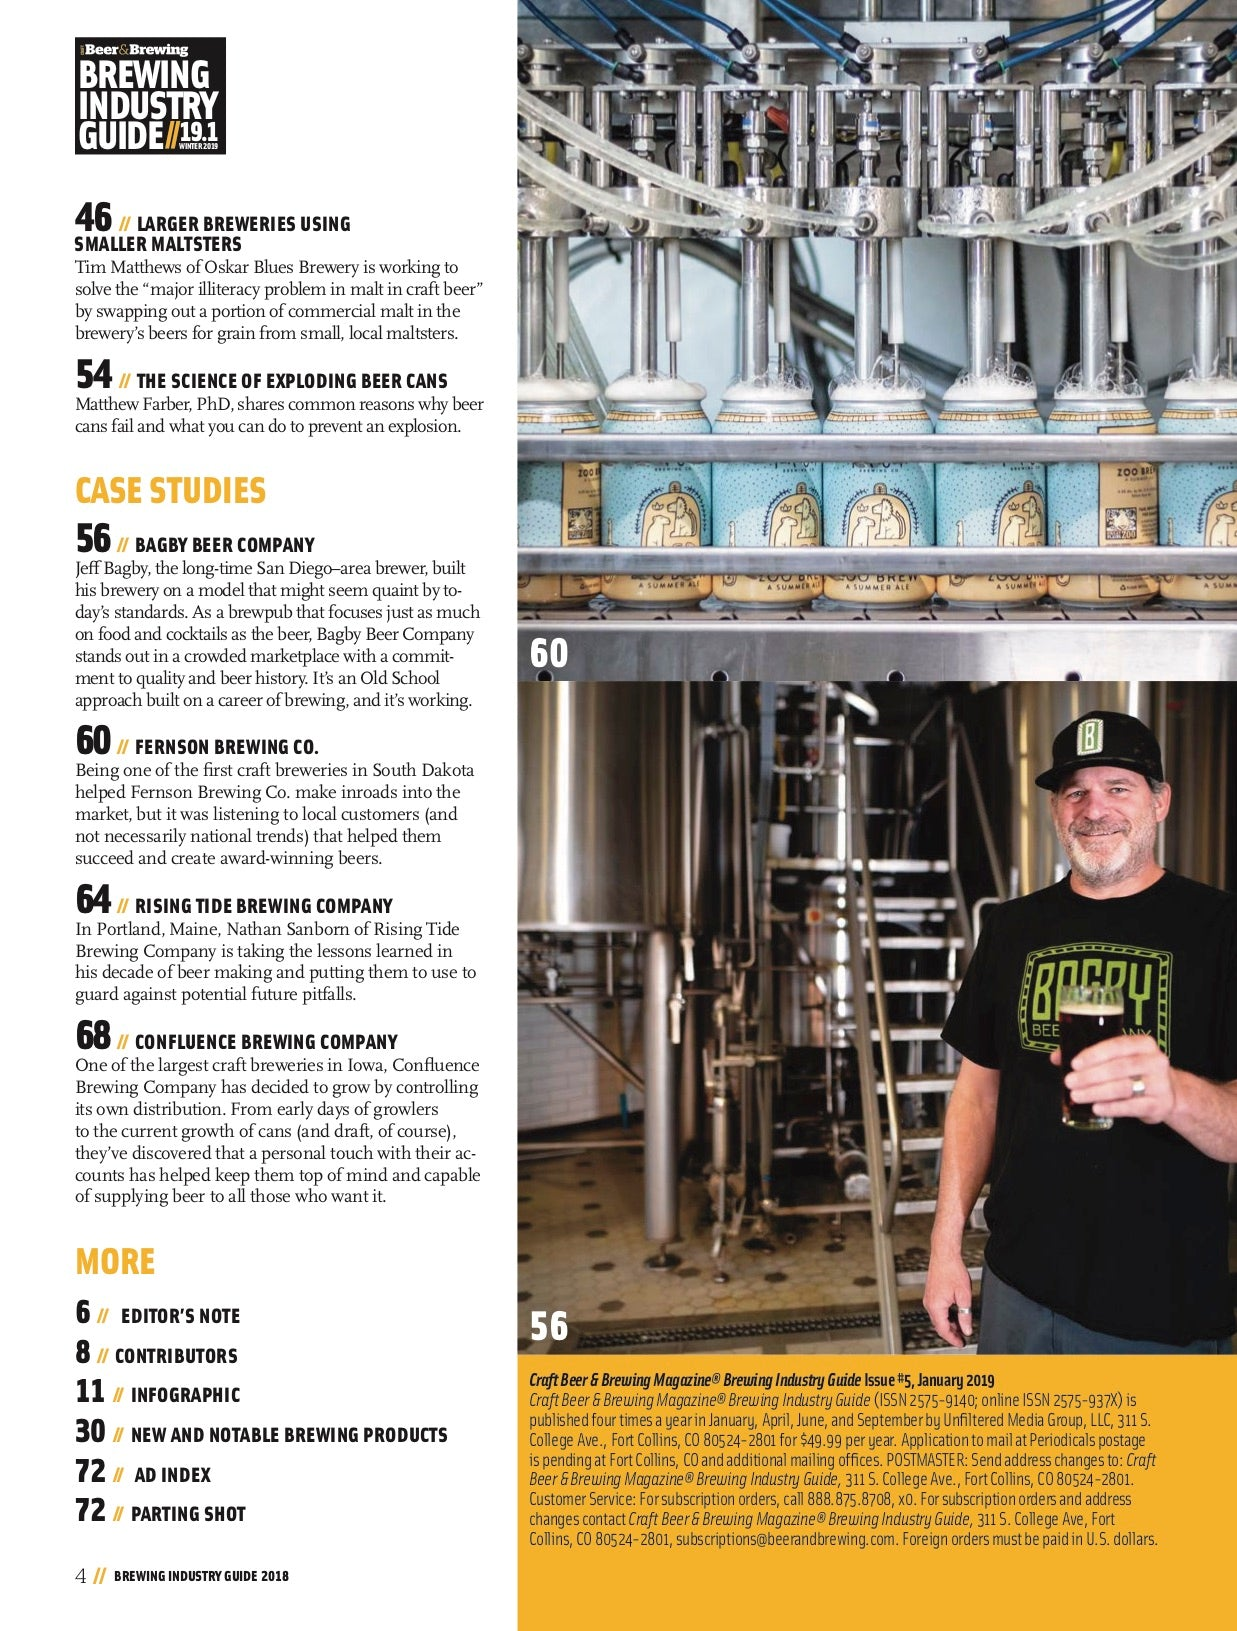 Brewing Industry Guide 19 1 (The Ingredients Issue) – Craft